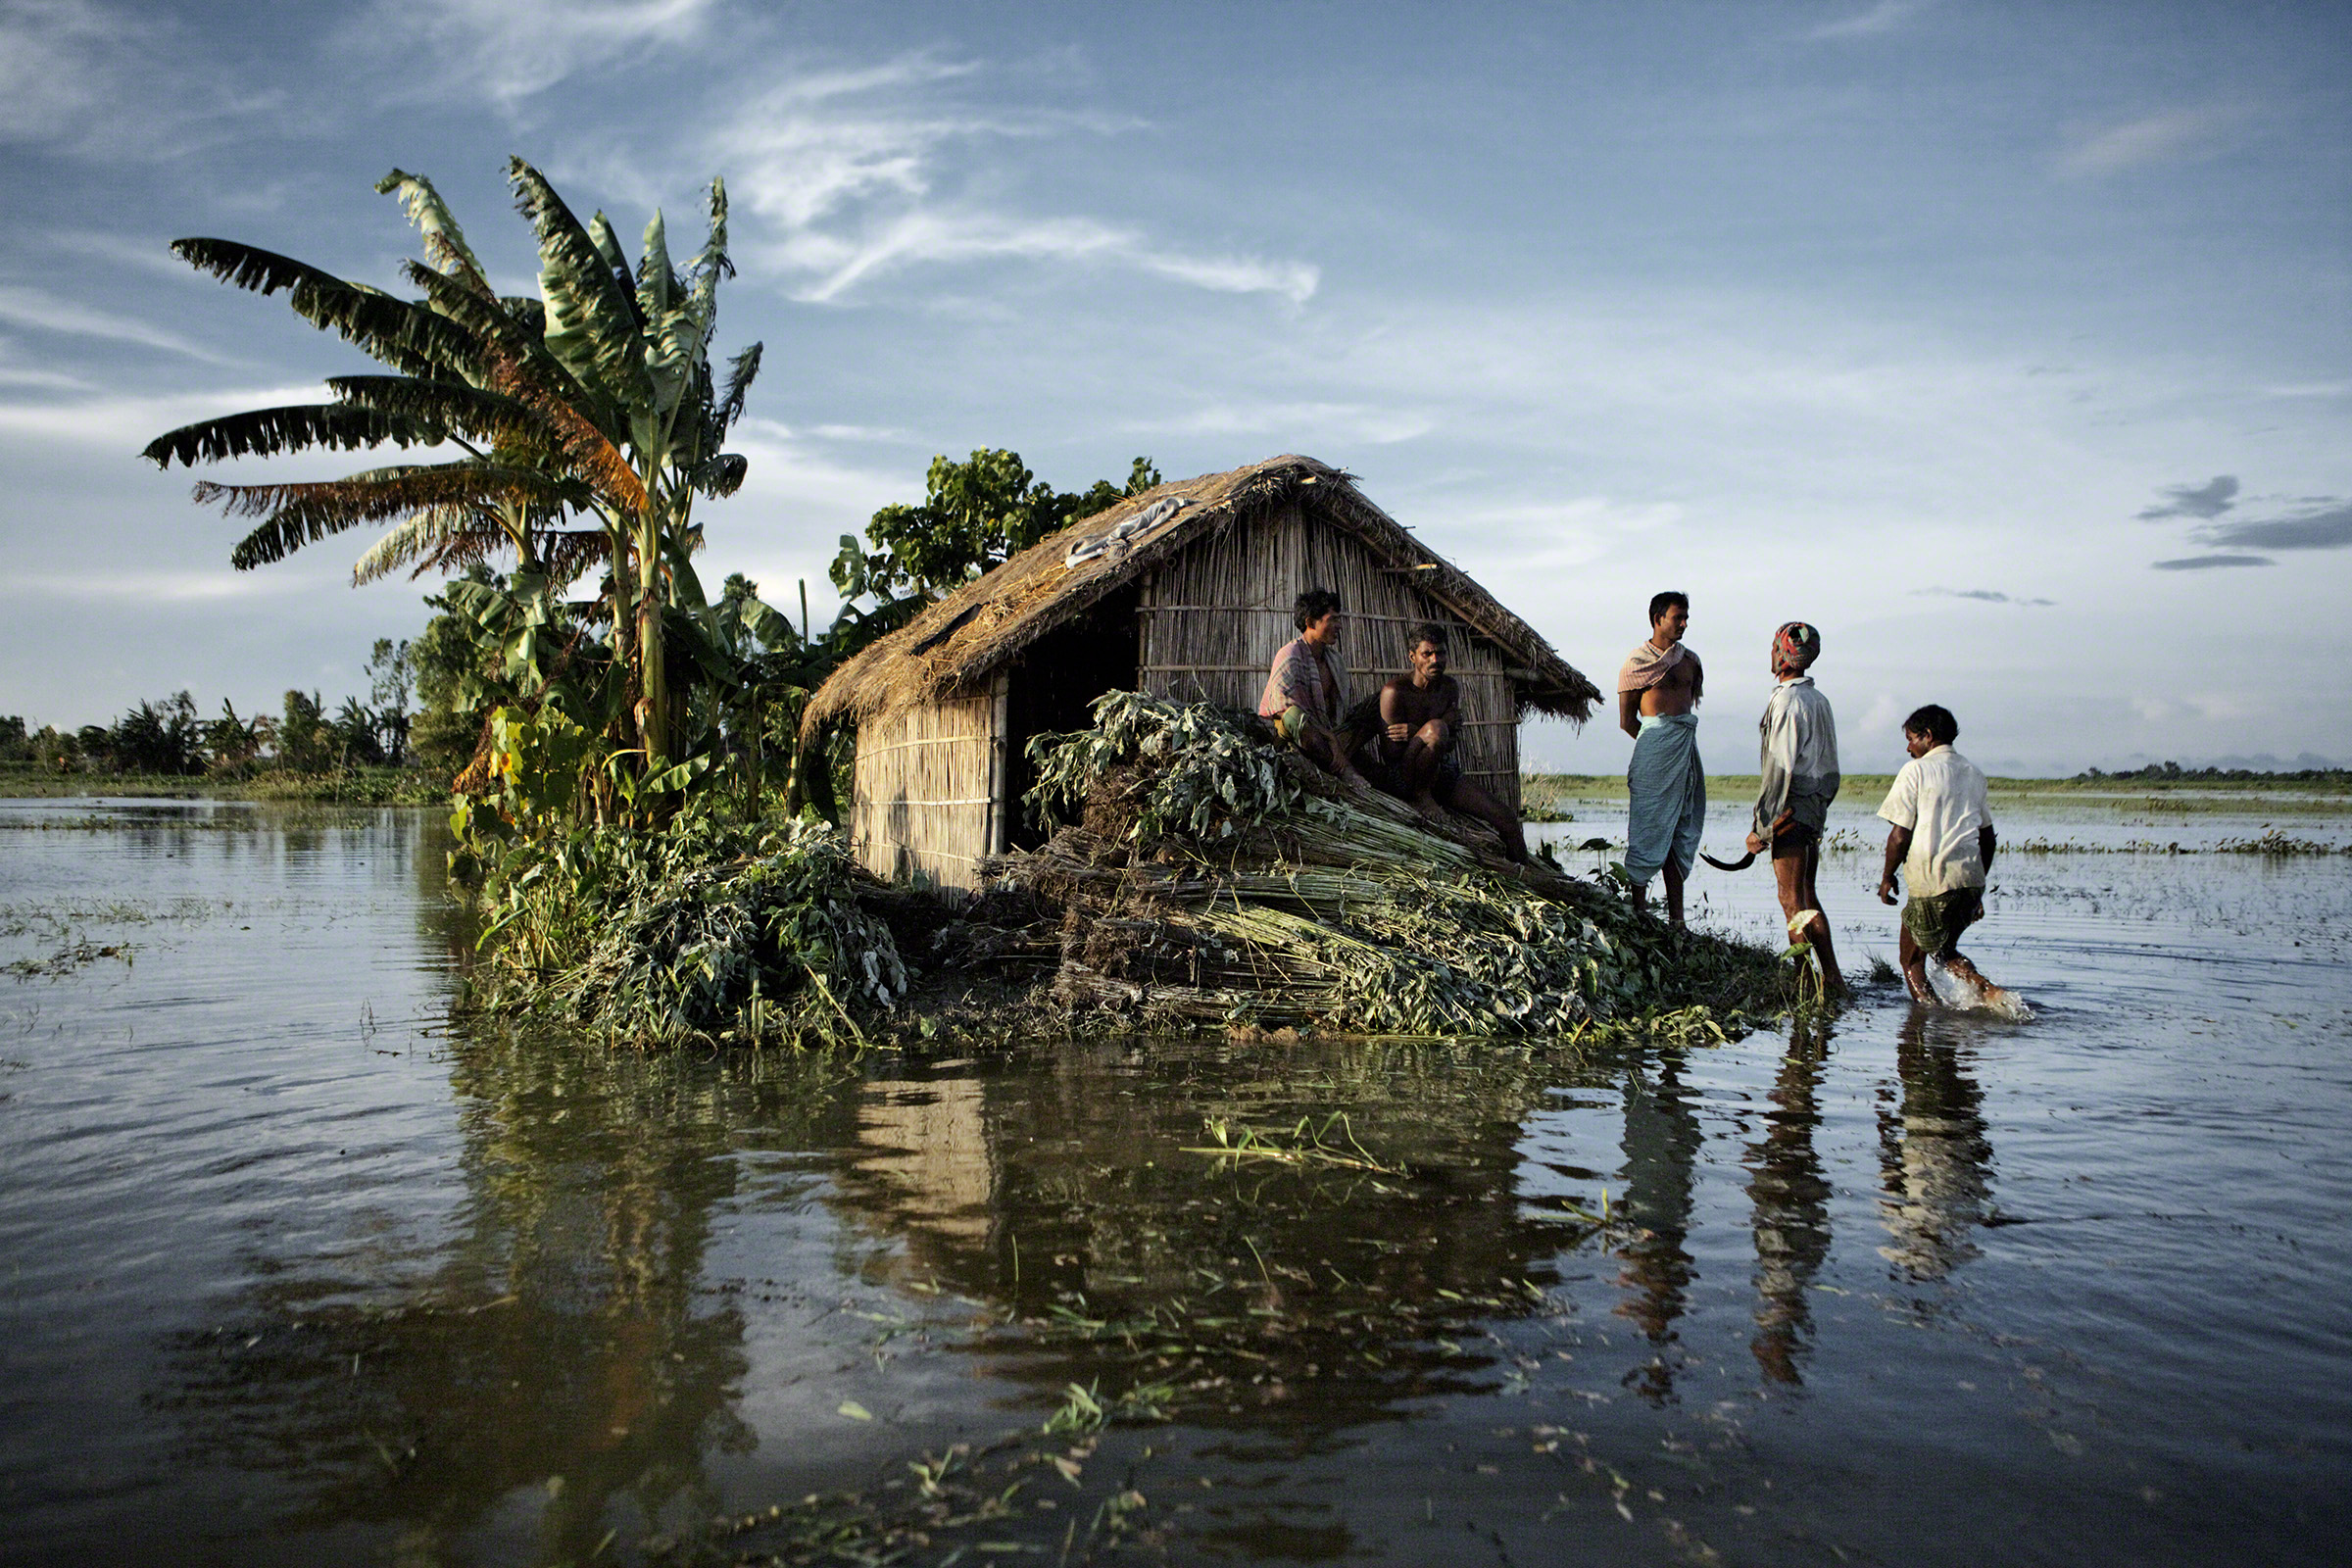 Gaibandha District, Bangladesh, 2010. During the harvest of jute, villagers rest above the floodwaters of the surging Brahmaputra River. A simple adaptation in flood-prone areas is building every house on a two-meter tall mud plinth. Photo: Jonas Bendikse